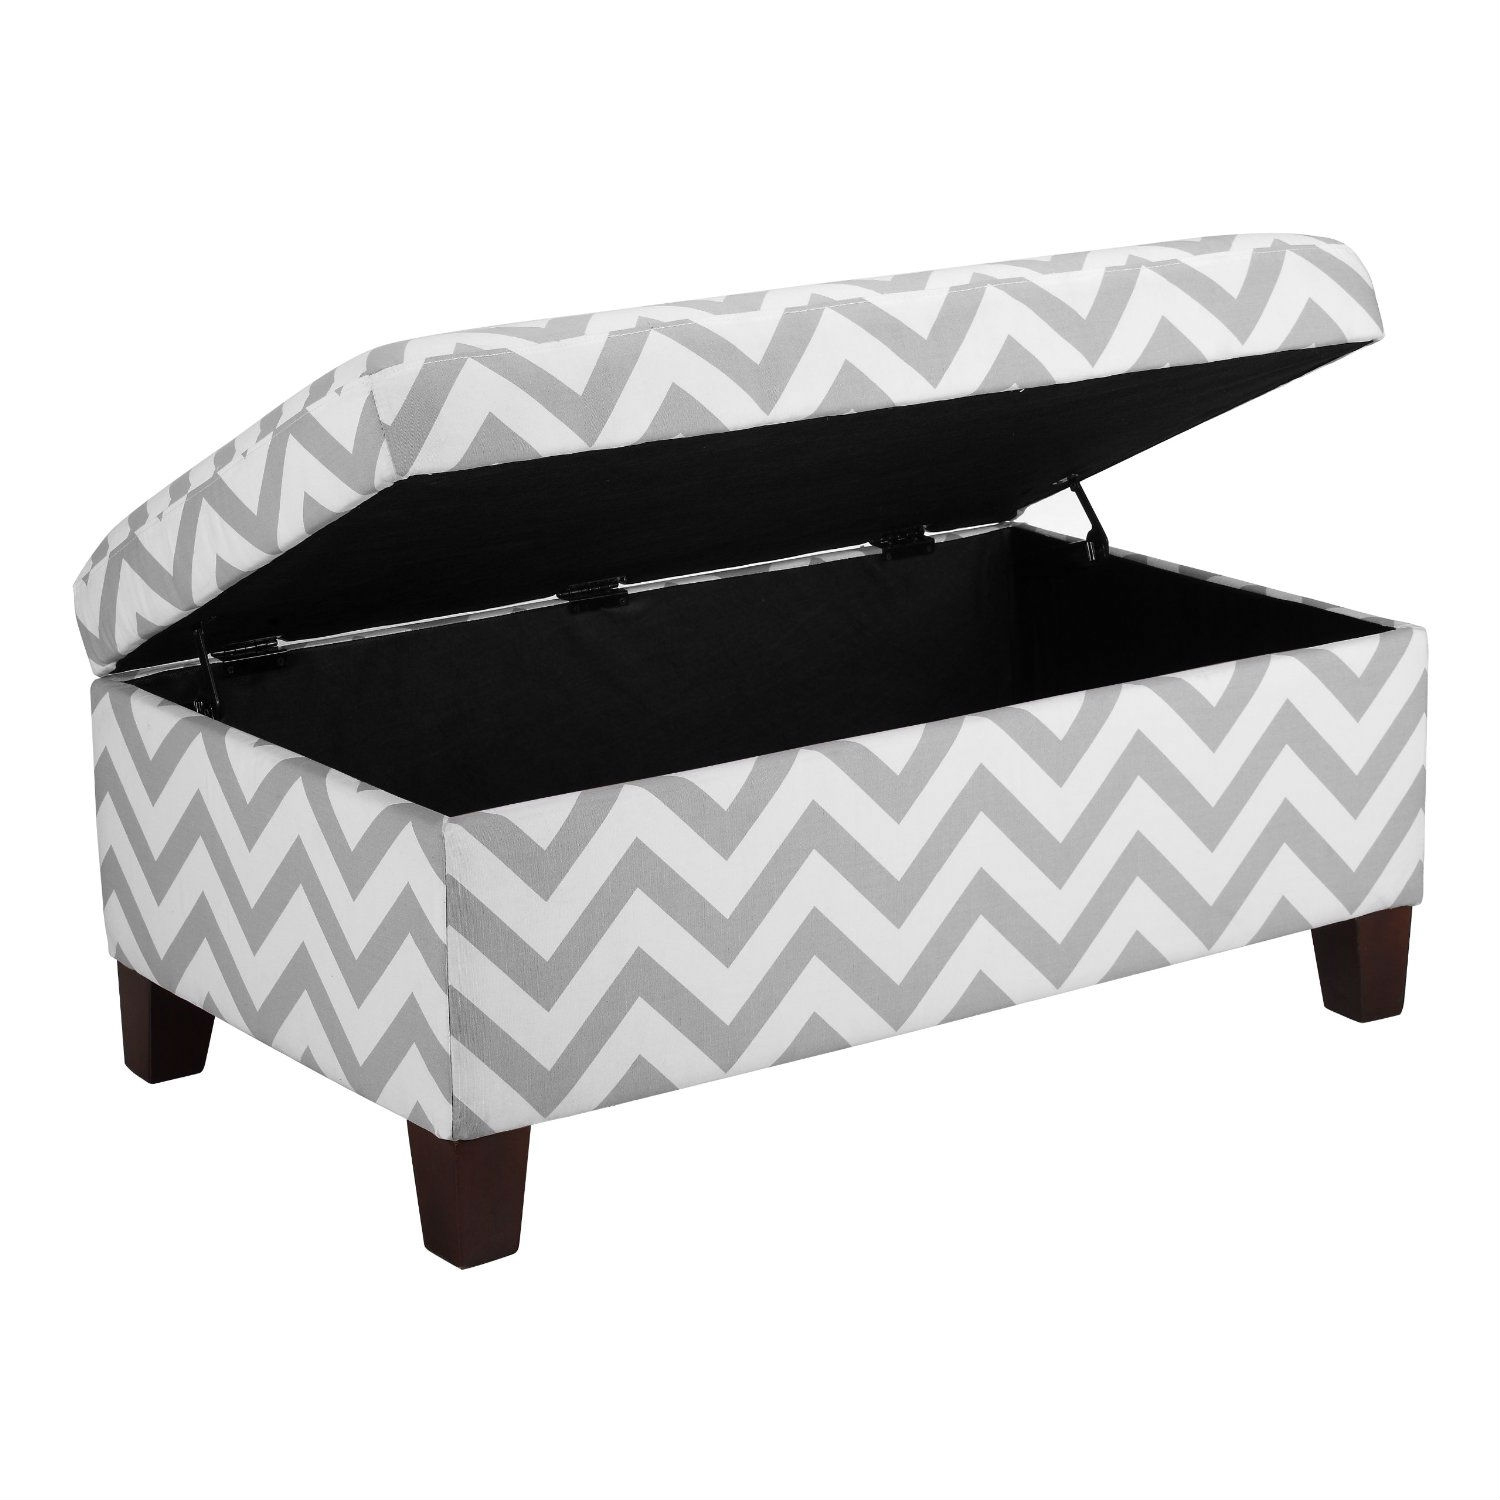 Grey u0026 White Chevron Stripe Padded Storage Ottoman Bench  sc 1 st  FastFurnishings.com & Grey u0026 White Chevron Stripe Padded Storage Ottoman Bench ...